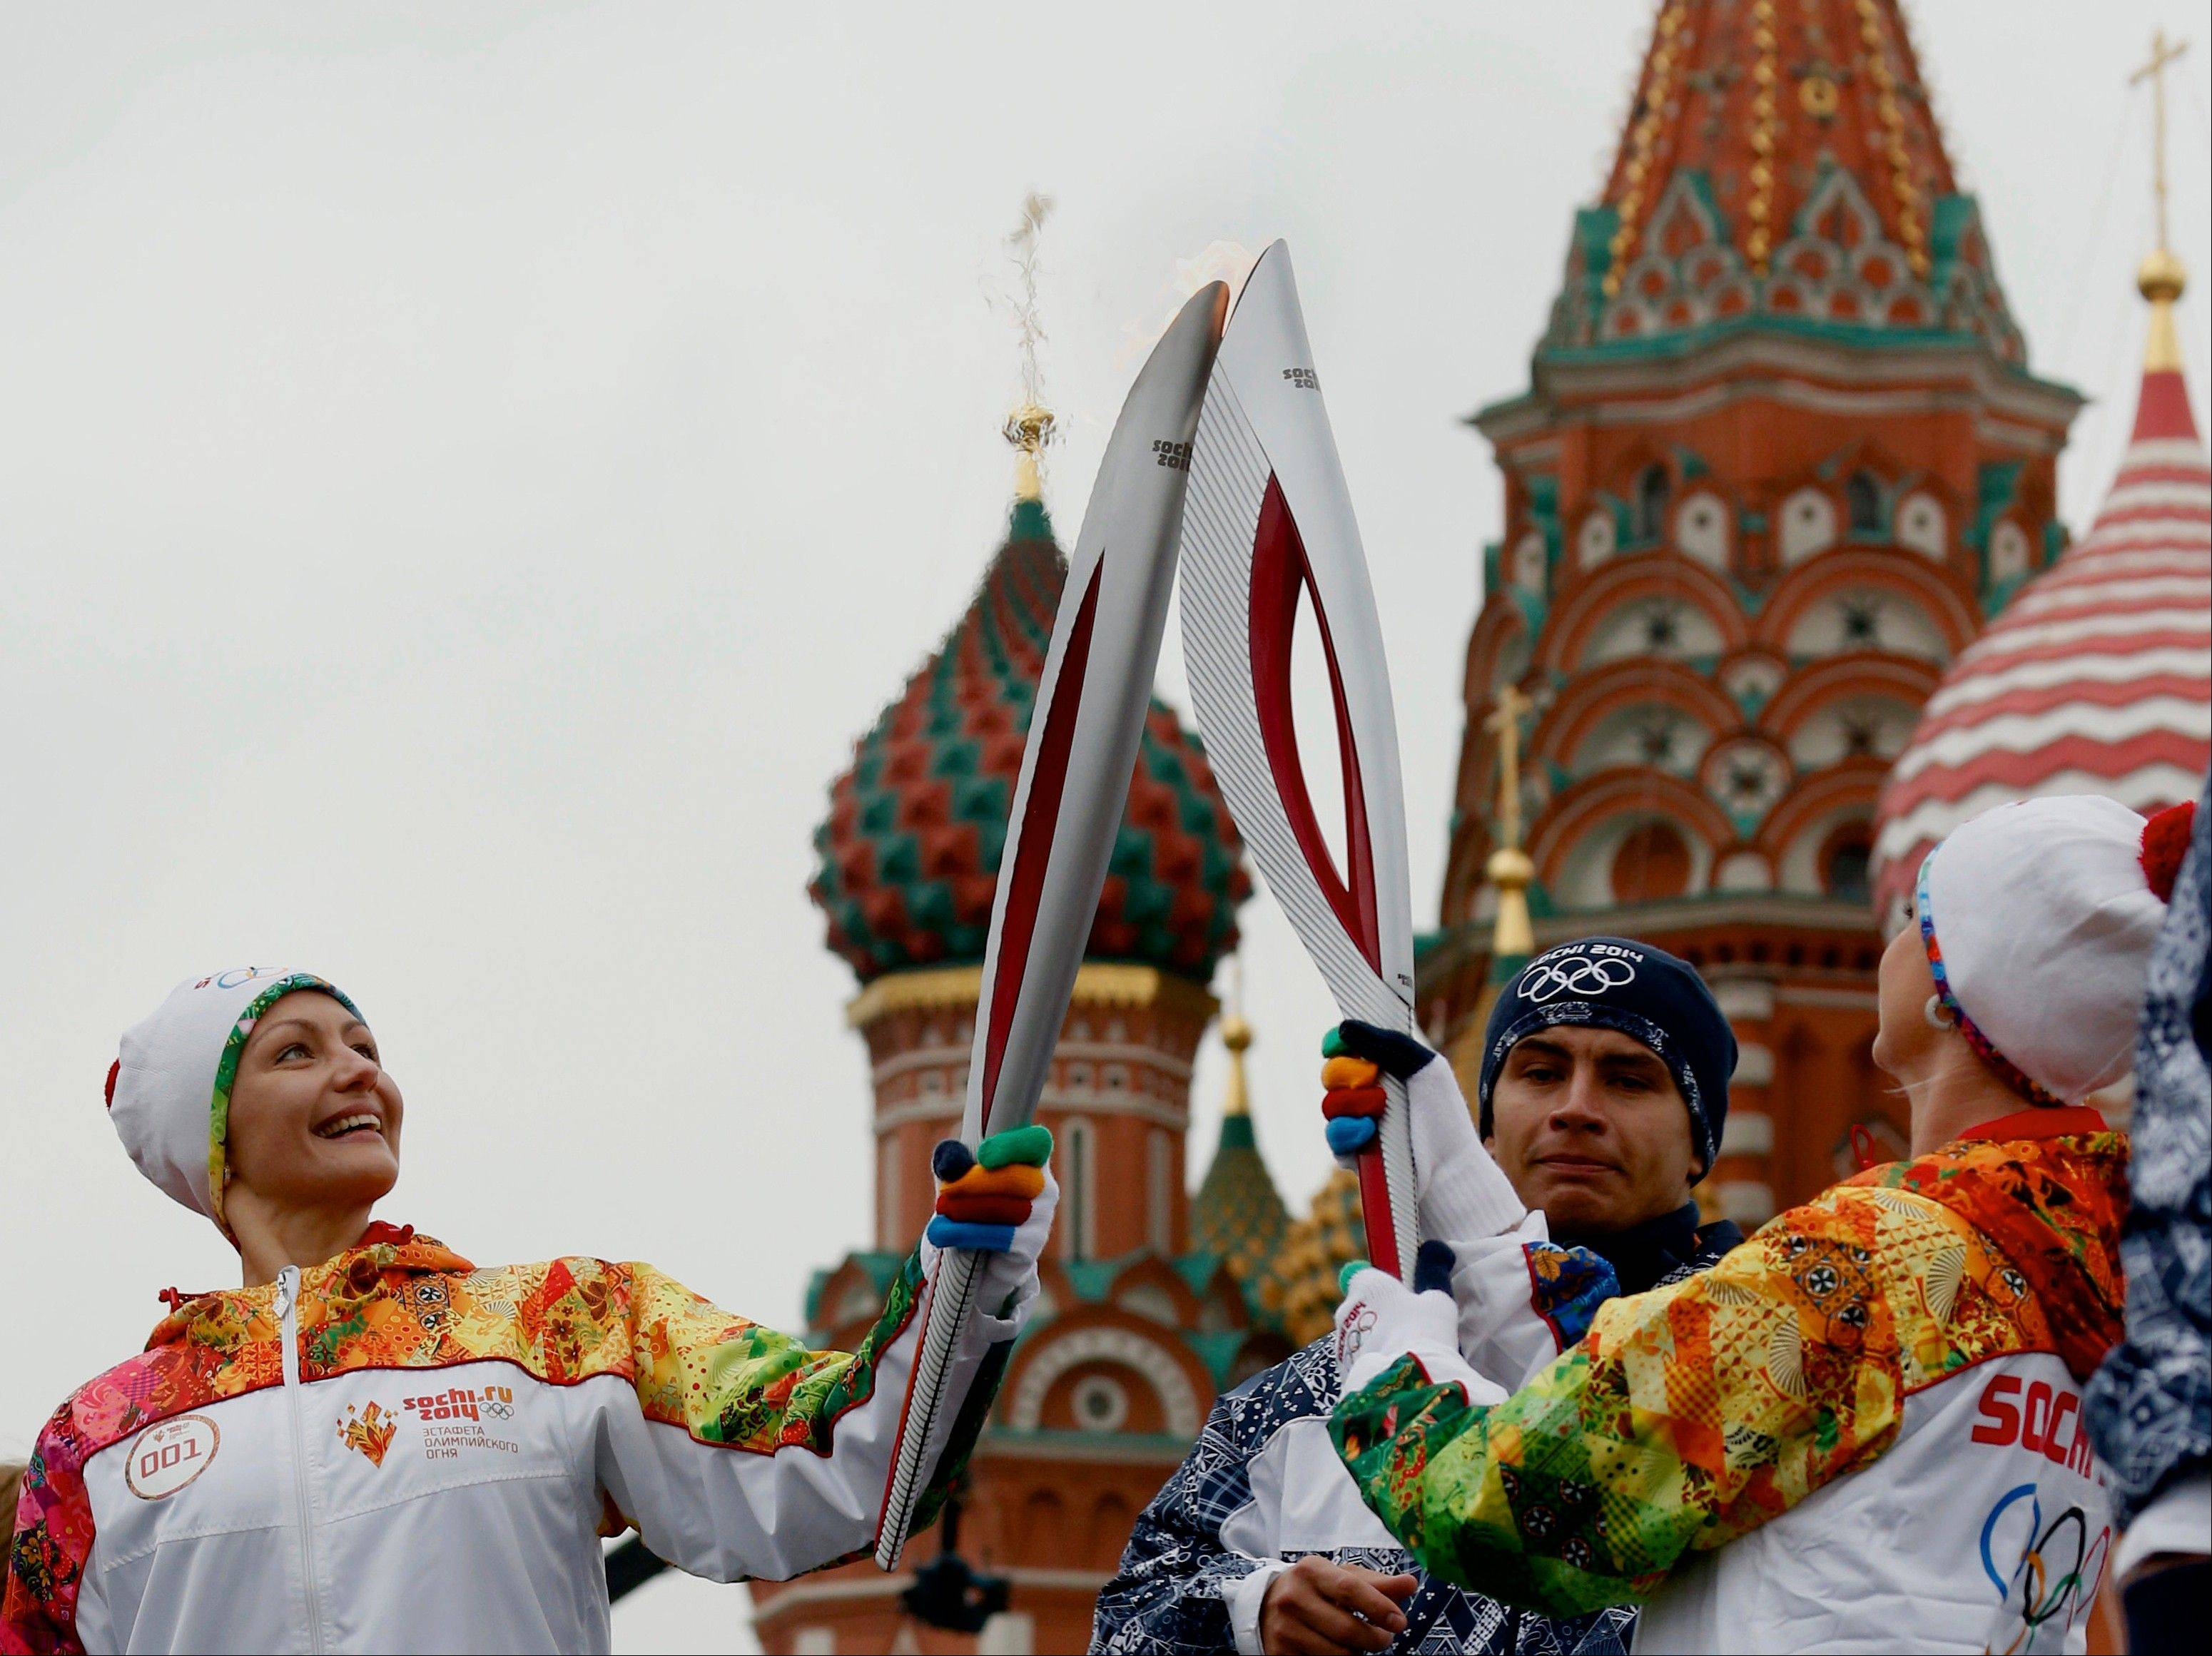 Russian Olympic gold medalists Anastasya Davydova, a synchronized swimmer, left, and Svetlana Khorkina, a gymnast, join their torches during Monday's relay of the Olympic flame in Moscow. The St. Basil's Cathedral is seen in the background.